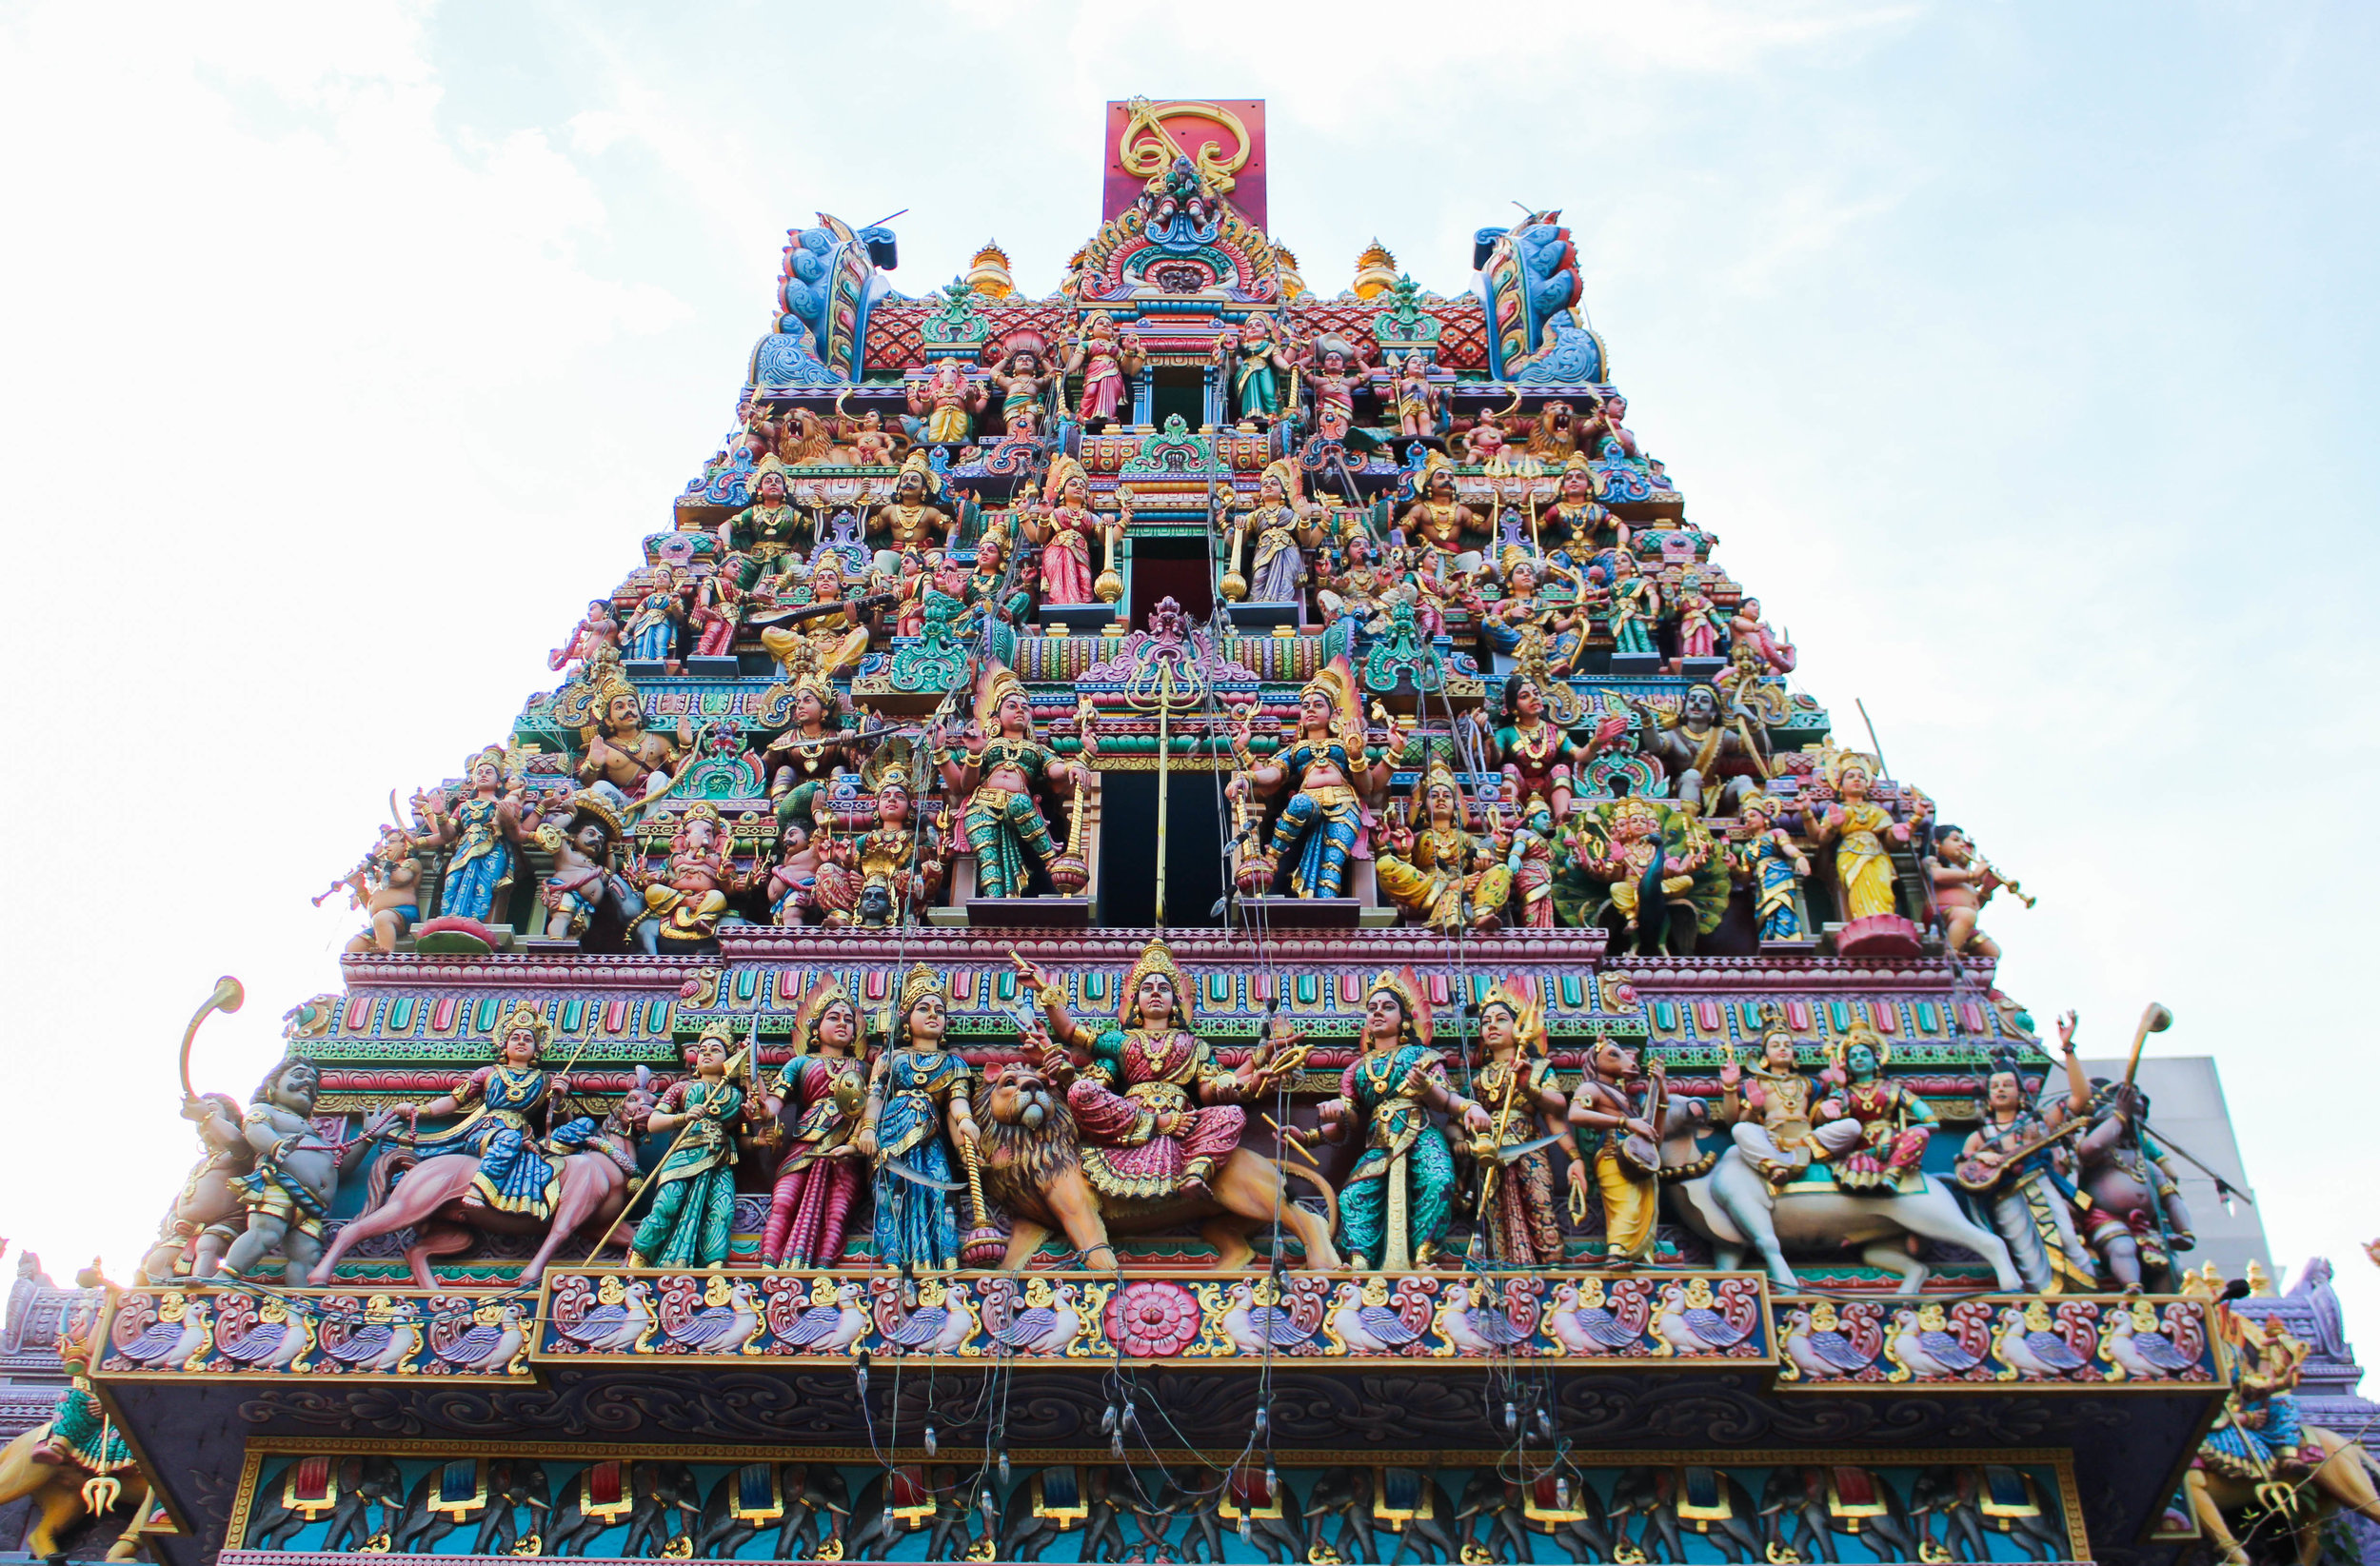 THE   GOPURAM  (MONUMENTAL TOWER) LOCATED AT THE ENTRANCE OF SRI MARIAMMAN TEMPLE